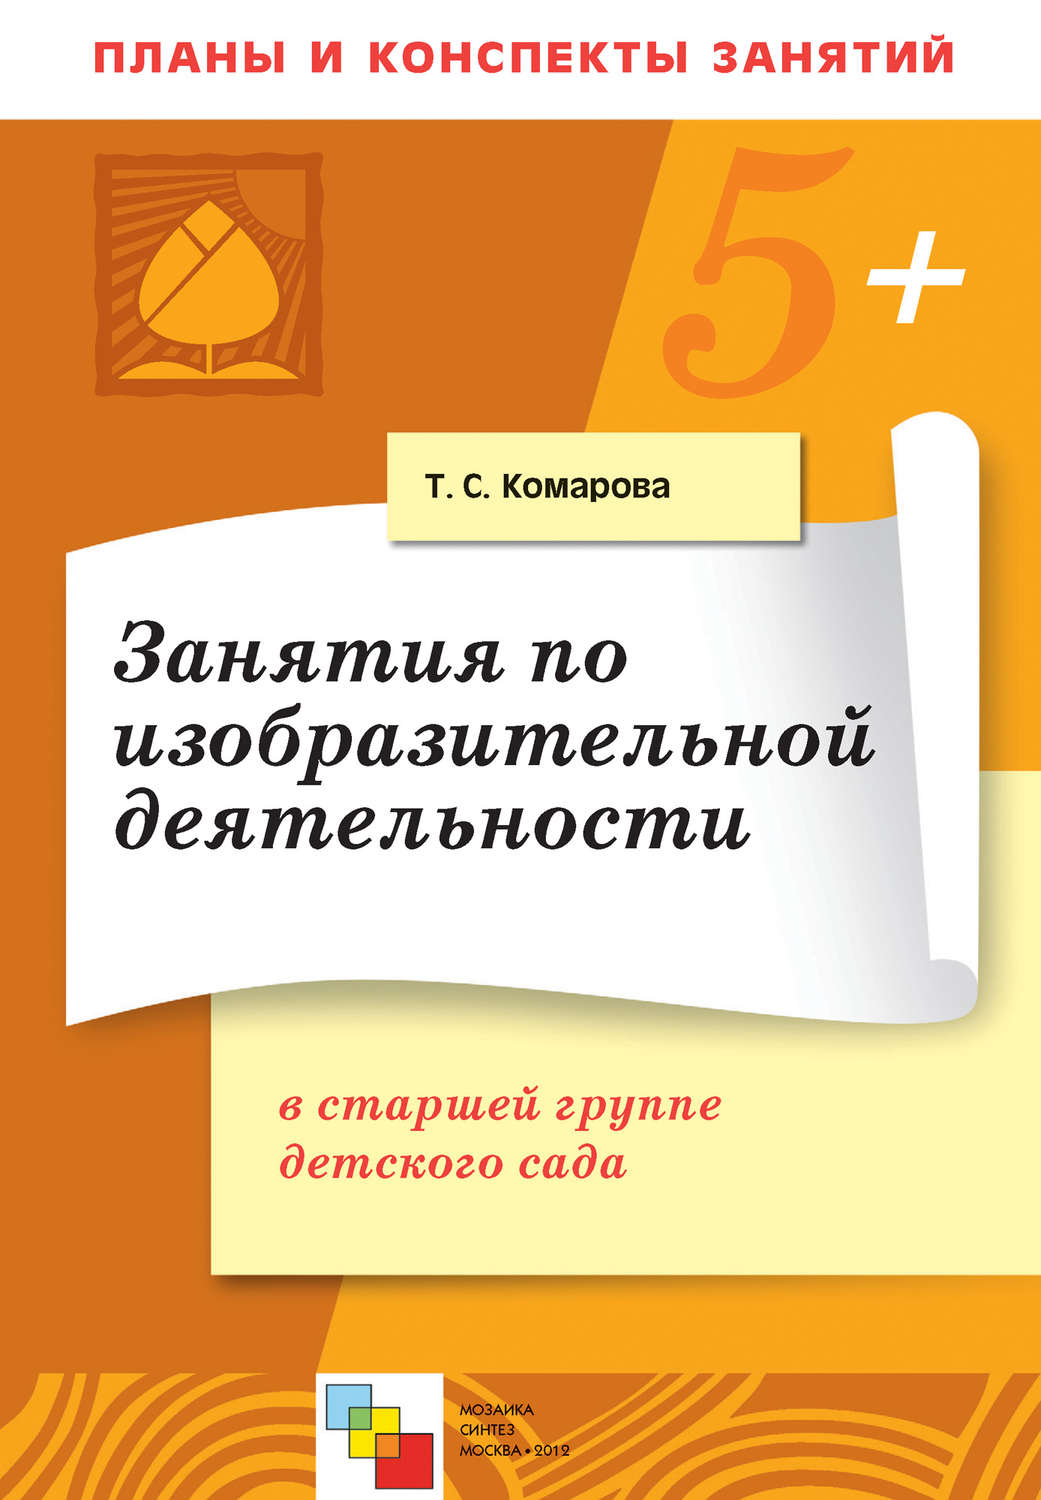 book Bisphosphonat